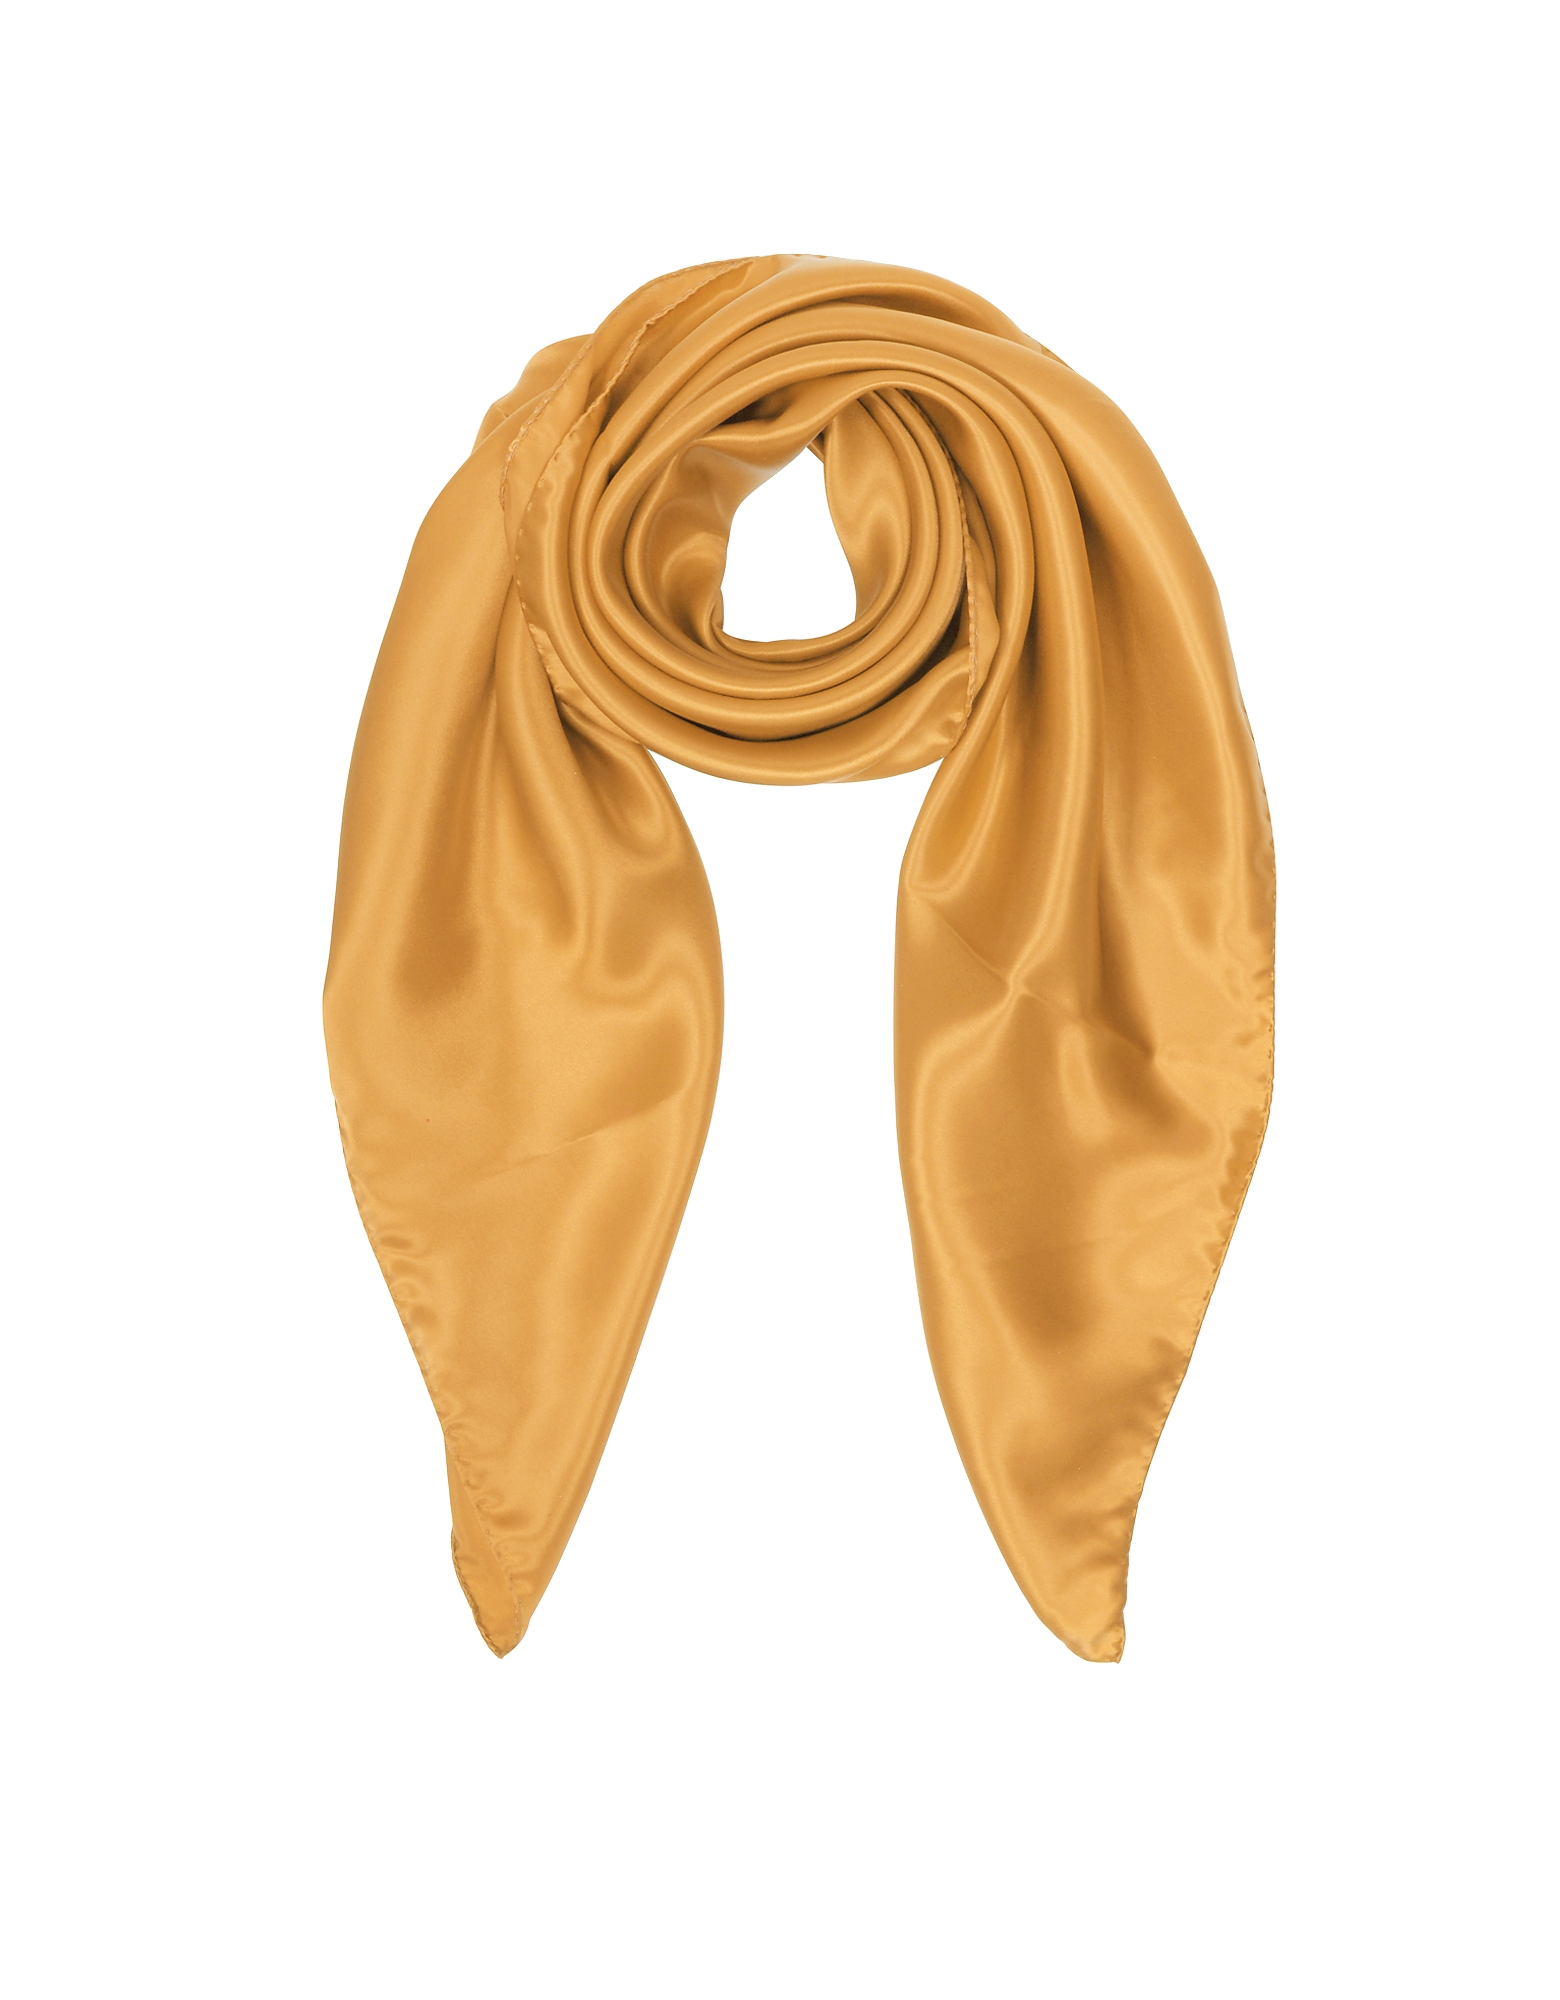 Forzieri Square Scarves, Pure Silk Square Scarf